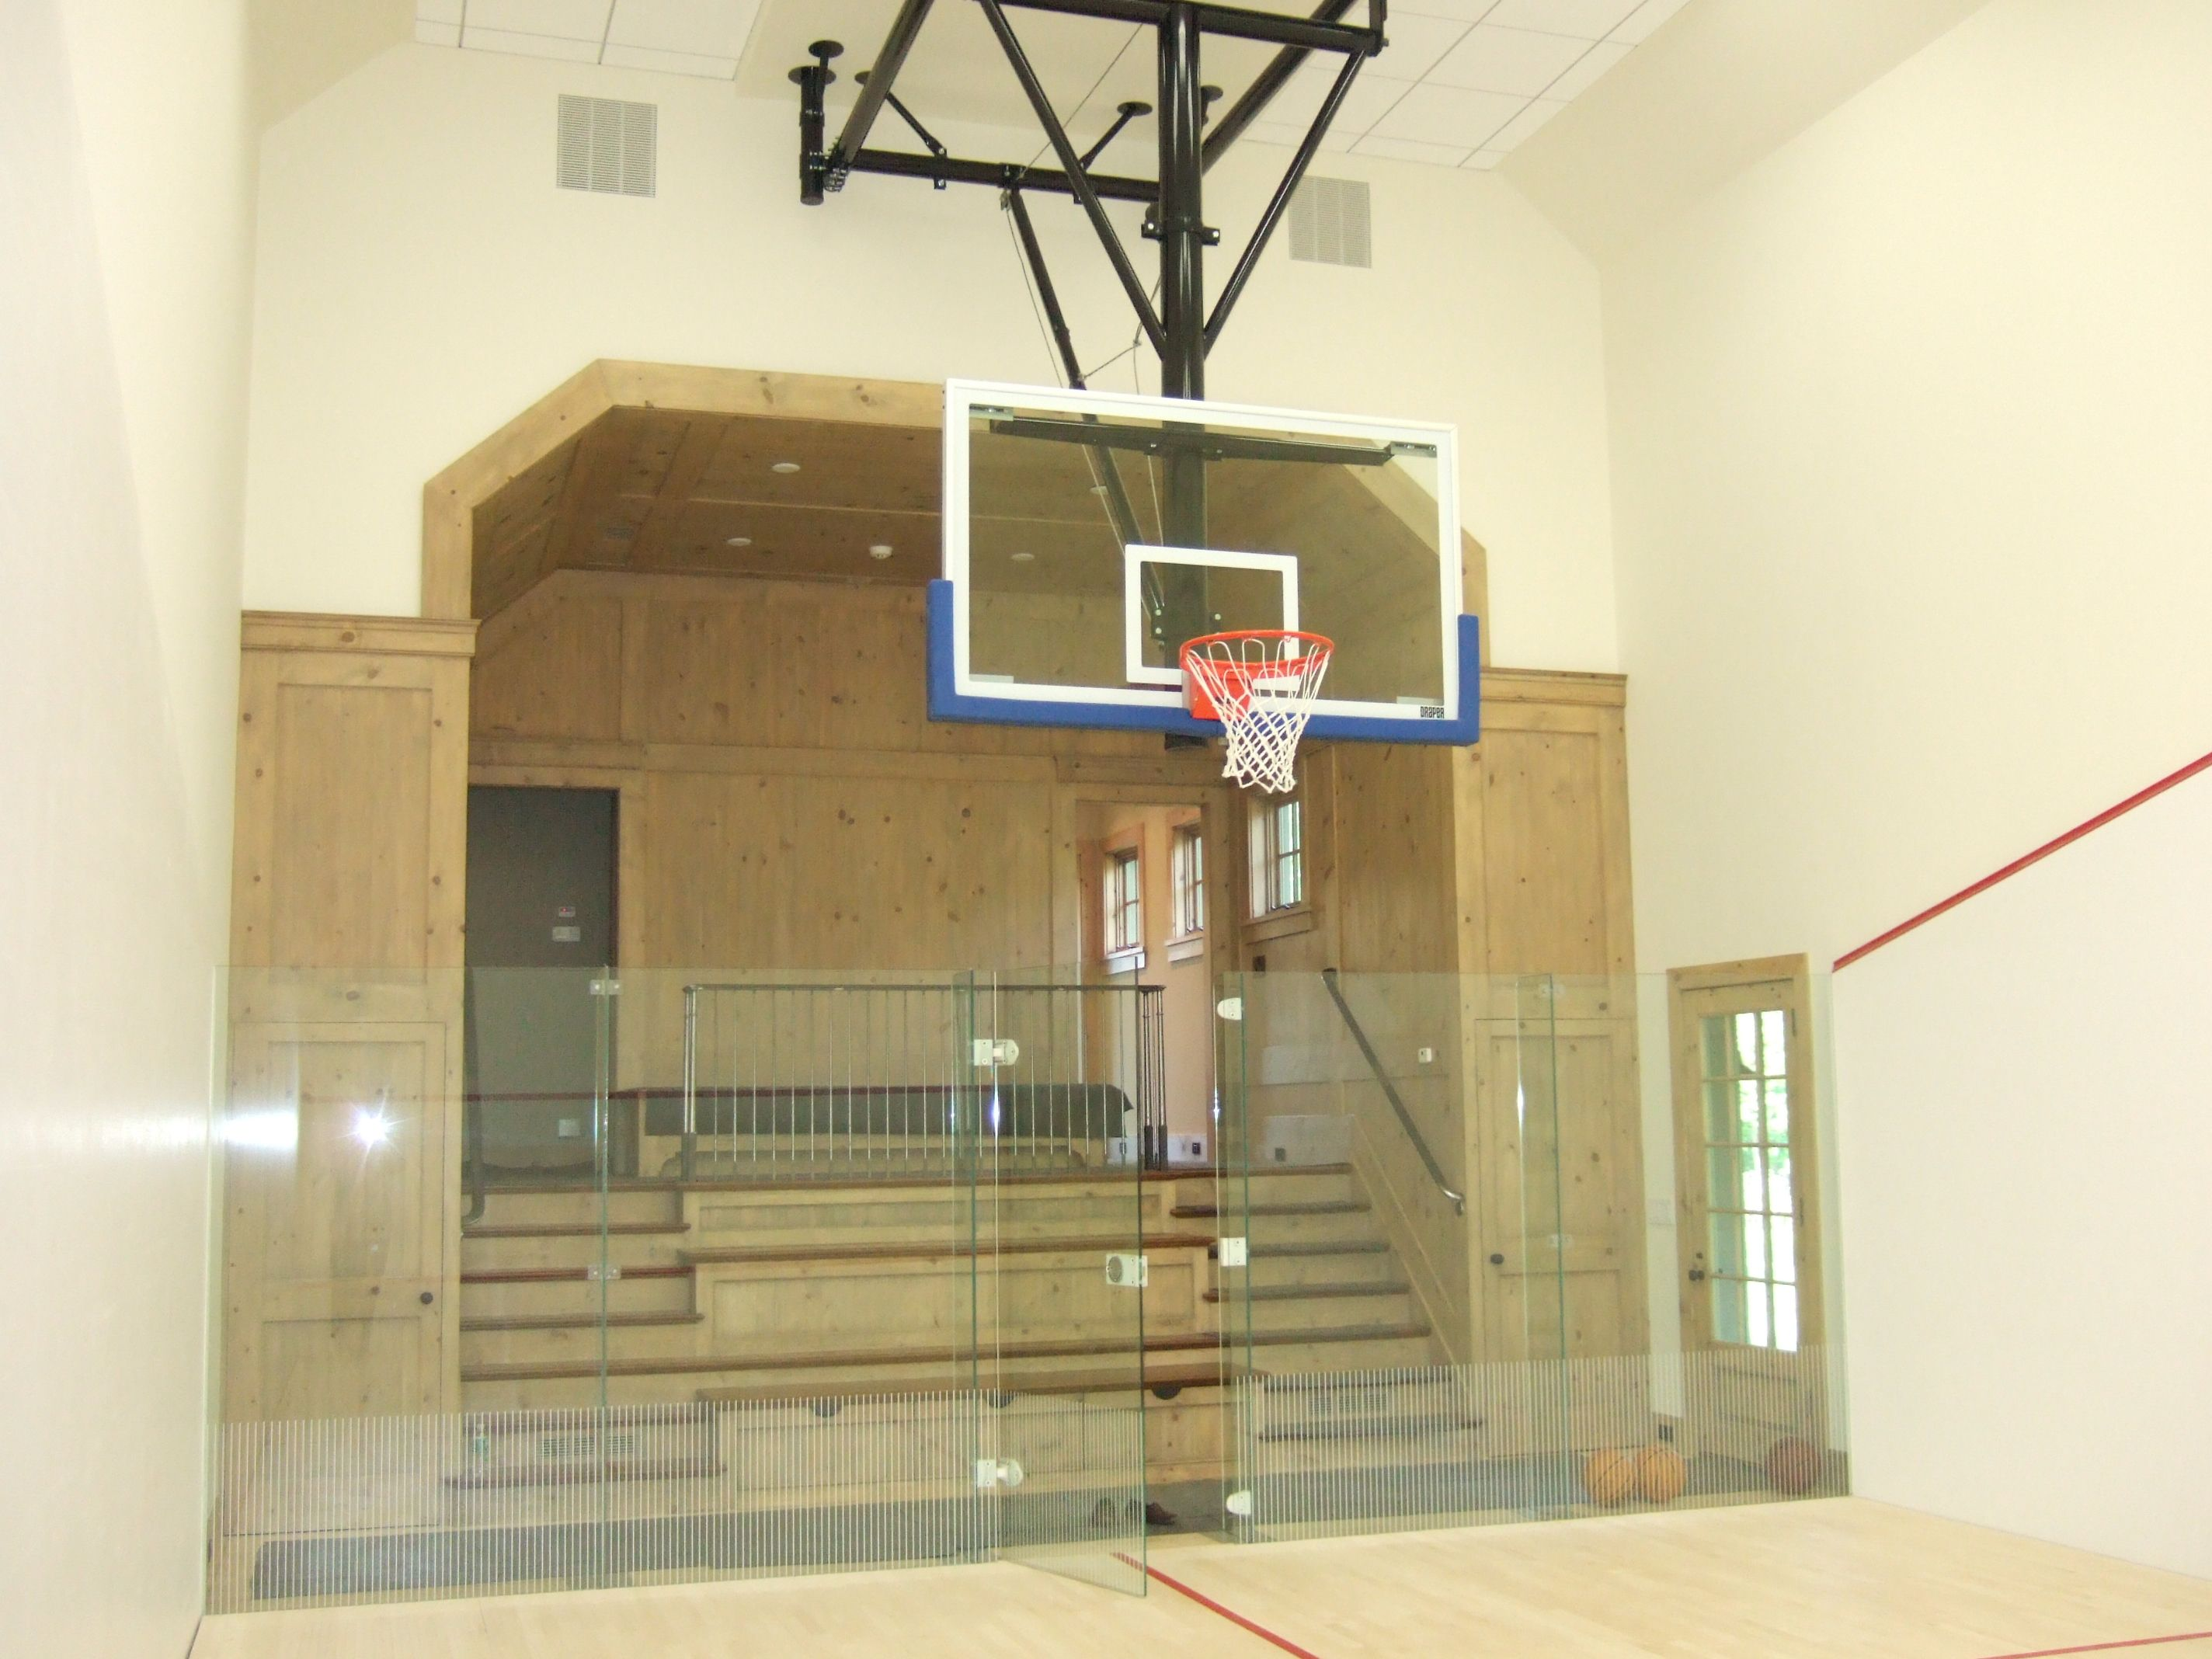 Squash Court Basketball Court Greenwich Ct Brooks And Falotico Associates Fairfield County Architects Residential Architecture Design Firms Design